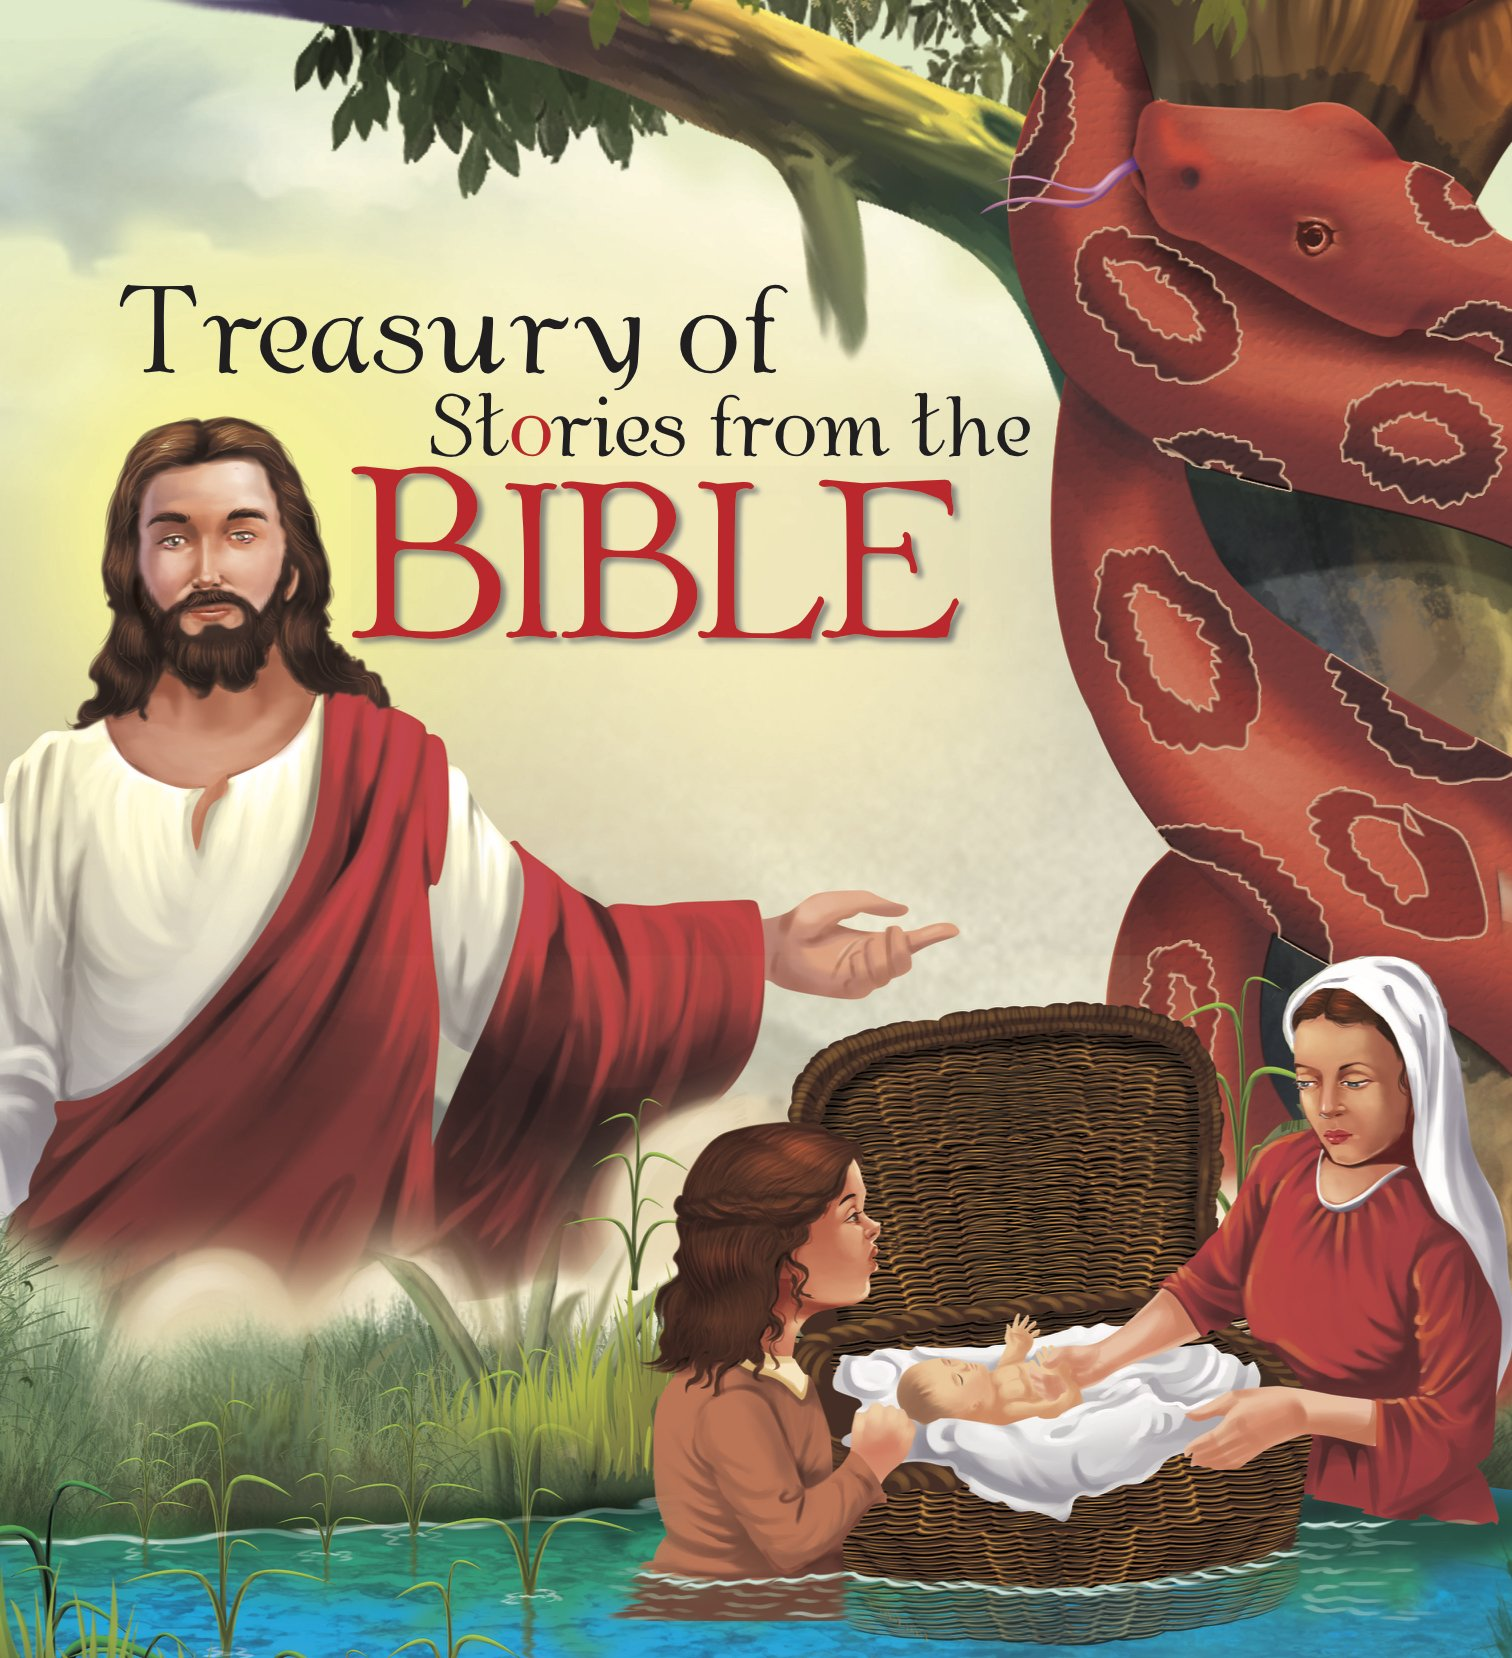 TREASURY OF STORIES FROM THE BIBLE